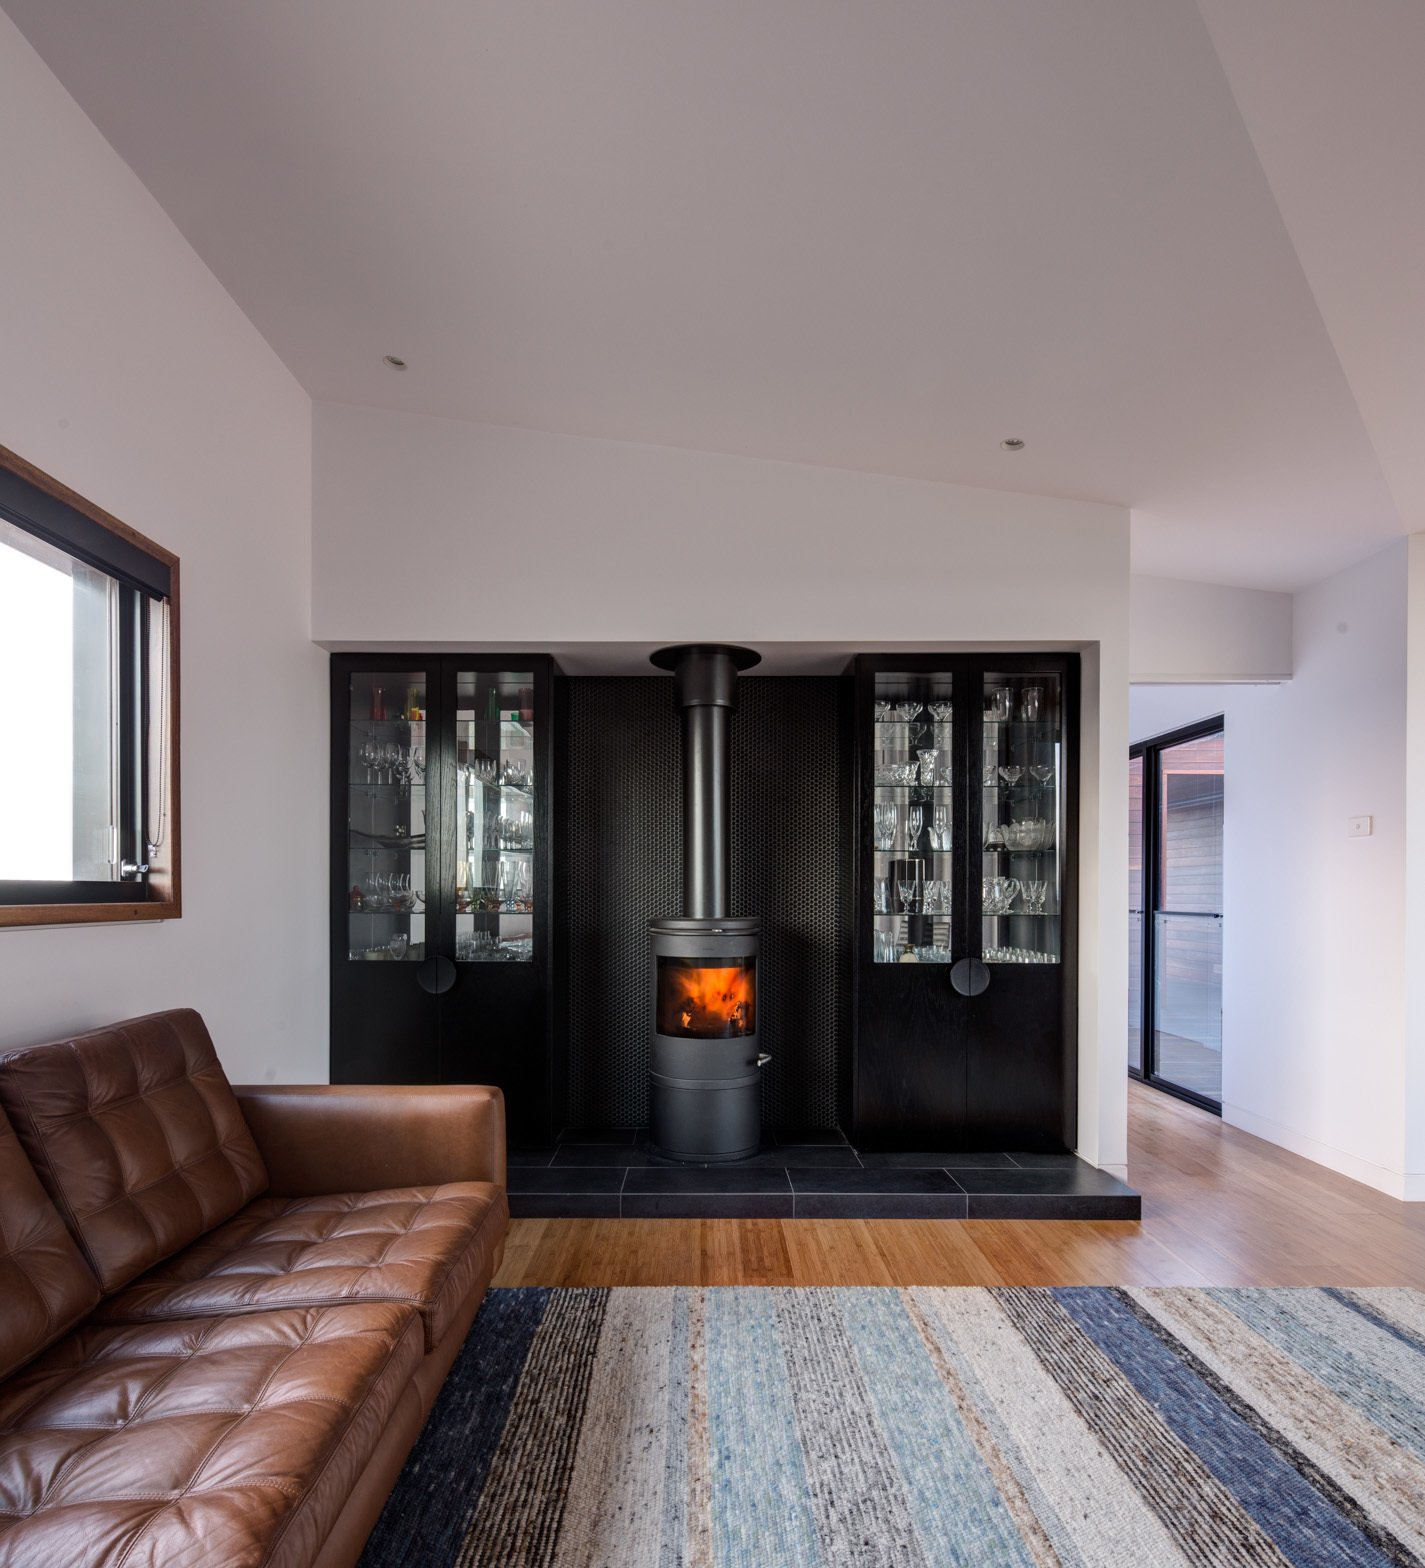 A Morso space heater warms the living room, which features a rug from Halcyon Lake.  Photo 6 of 7 in It Took Three Days to Ferry This Off-the-Grid Prefab to Its Remote Australian Site